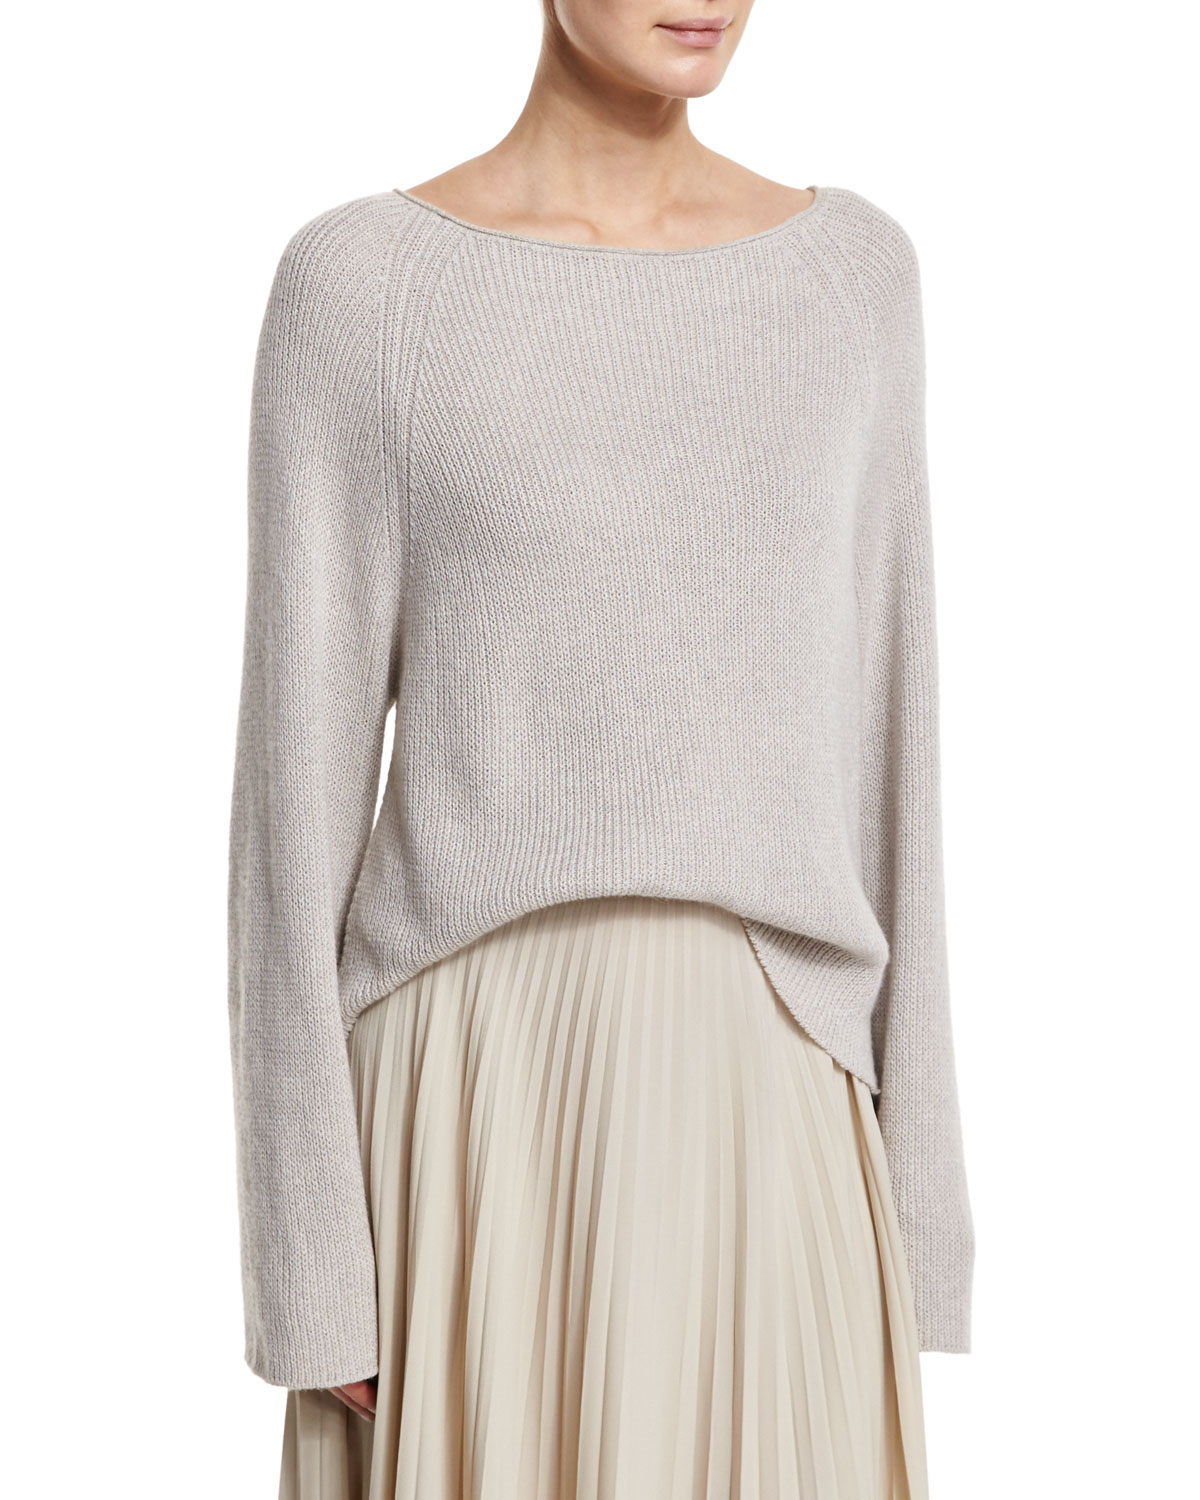 Cashmere-Blend Ribbed Pullover Sweater, Agate, Size: L - Helmut Lang